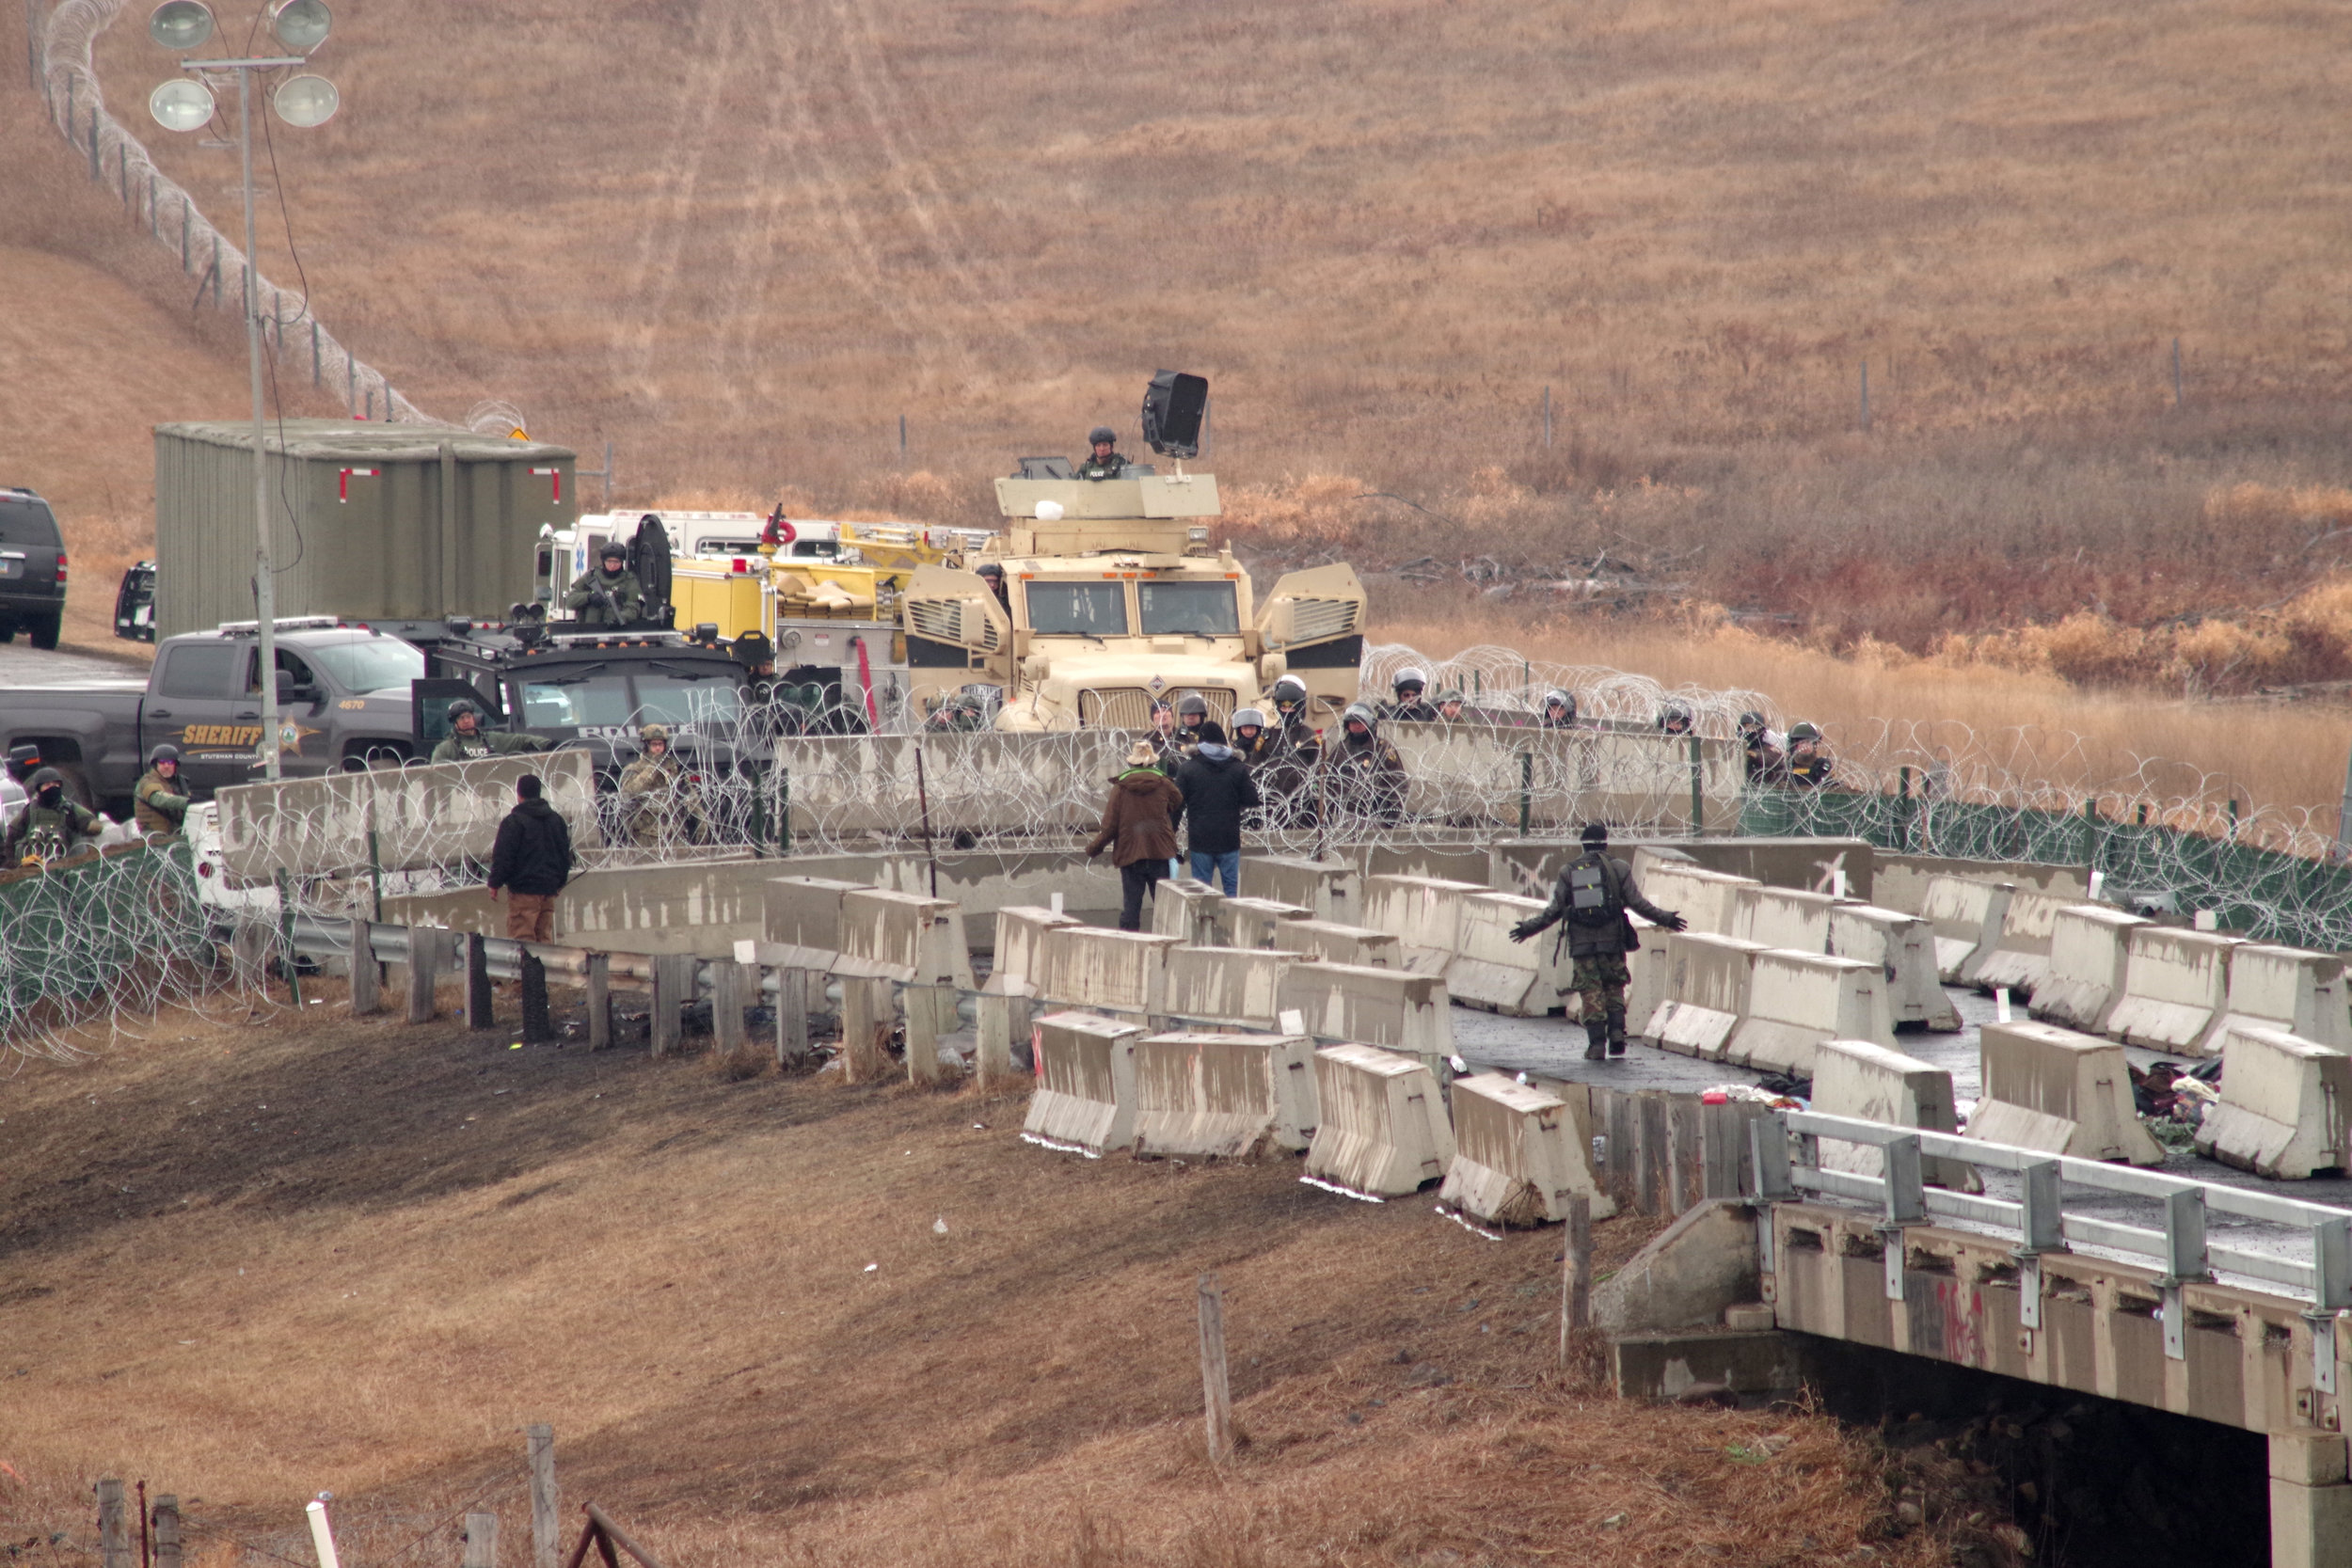 Bridge where cops have barricaded the road so Water Protectors can't access DAPL digging site.